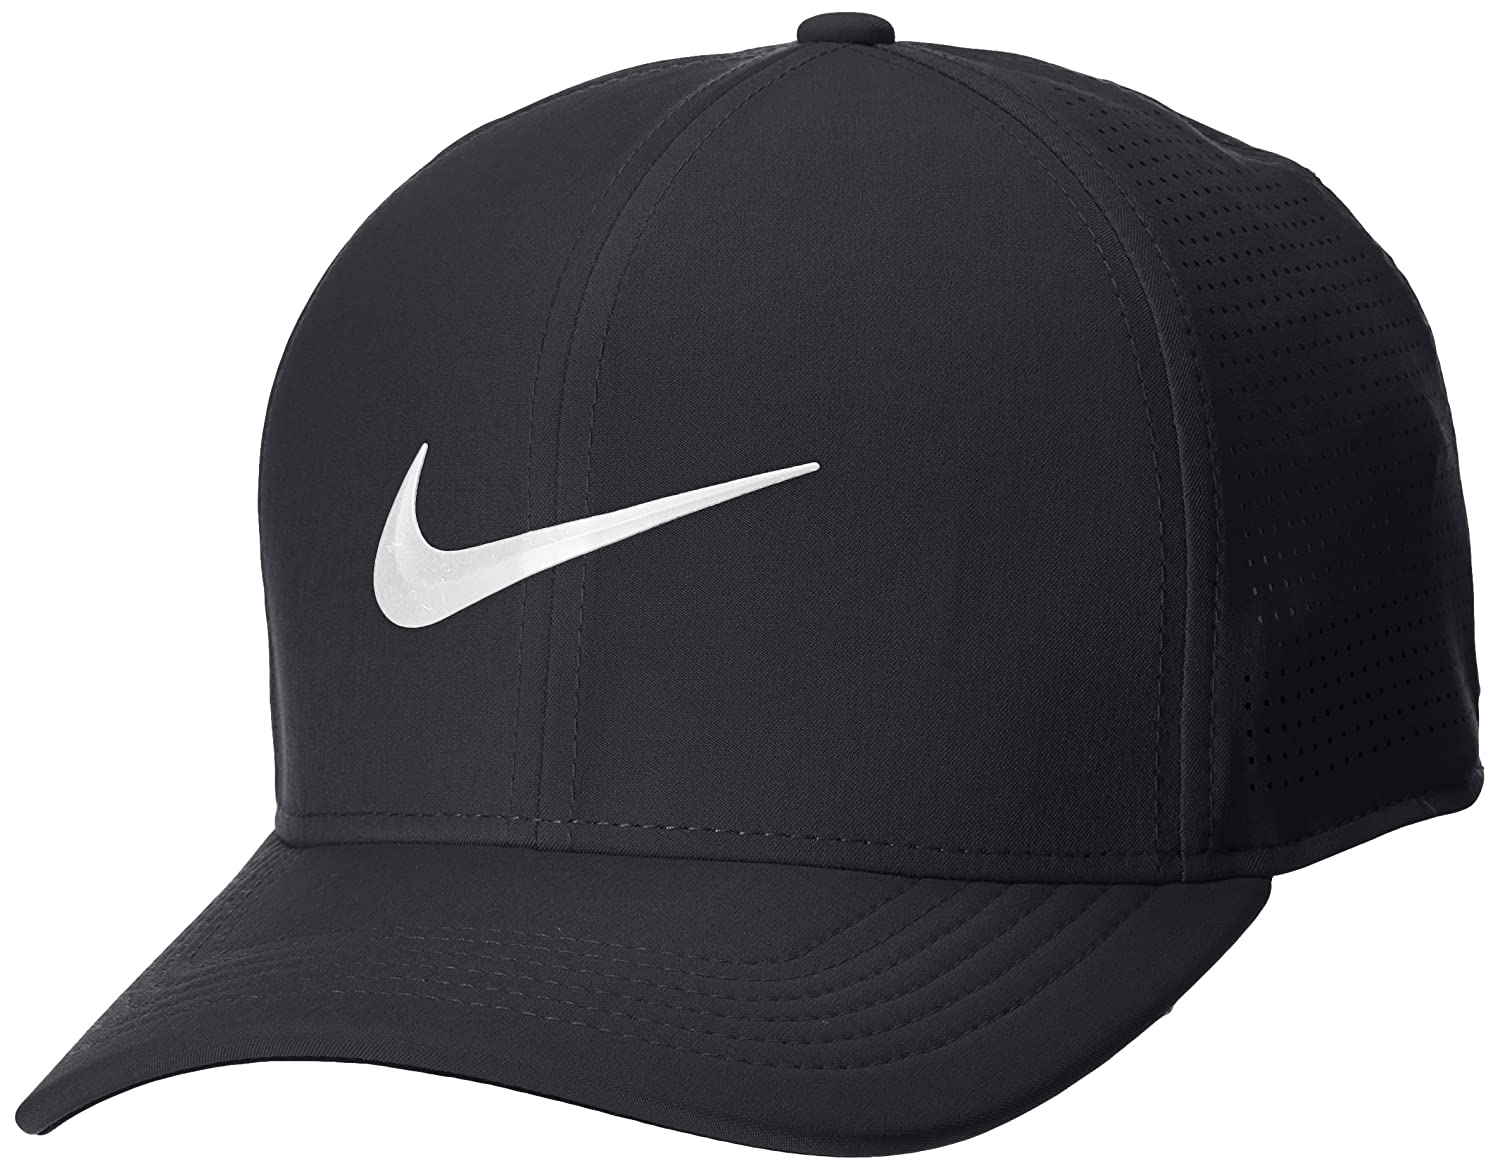 NIKE AeroBill Classic 99 Performance Golf Cap 2018